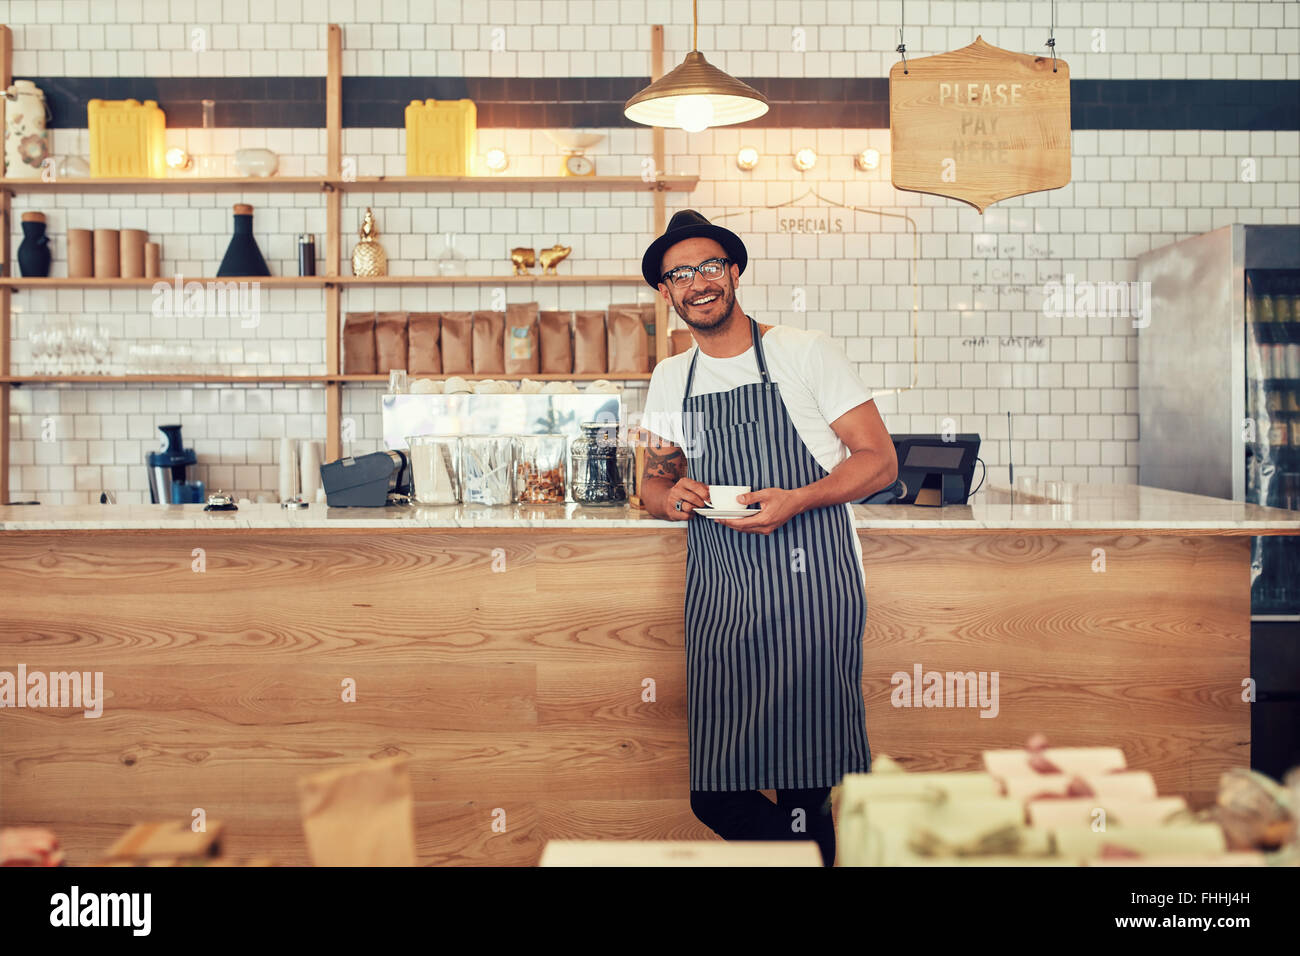 Portrait of happy young man wearing an apron and hat standing at a cafe counter holding a cup of coffee. Coffee - Stock Image